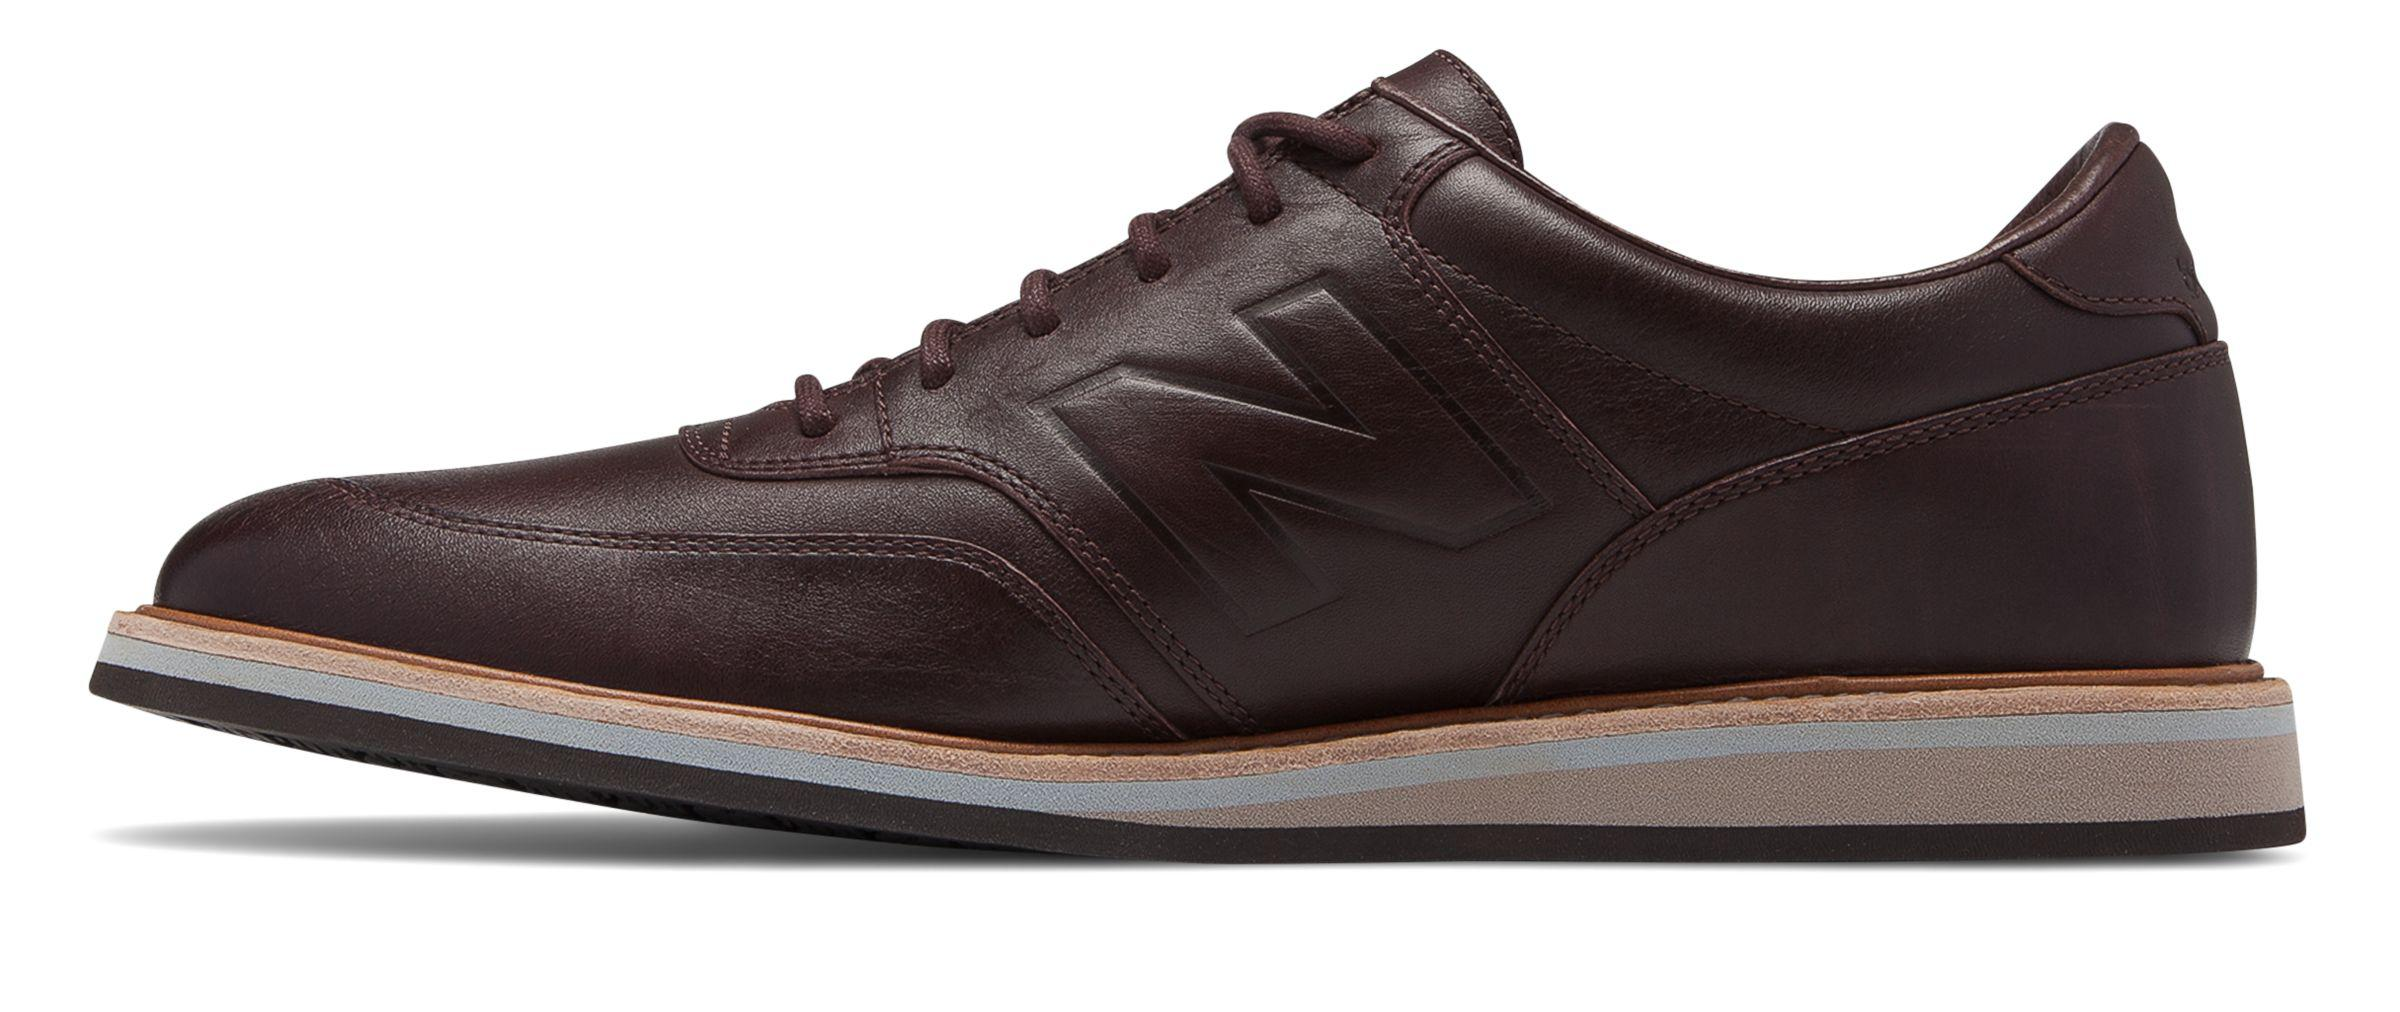 Leather 1100 in Brown for Men - Lyst